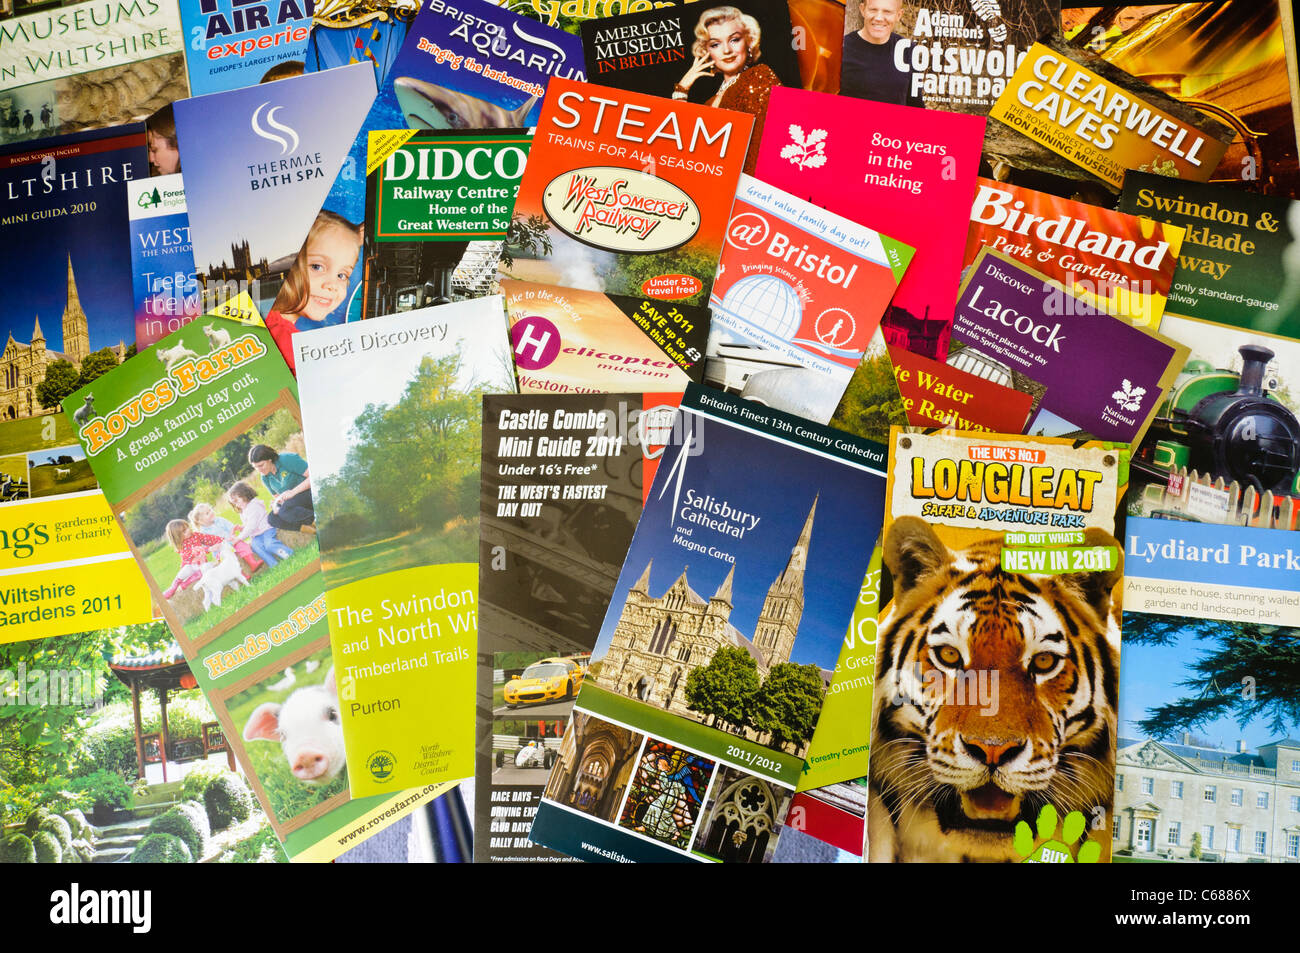 tourist information leaflets from the south west of england wiltshire hampshire and bristol area